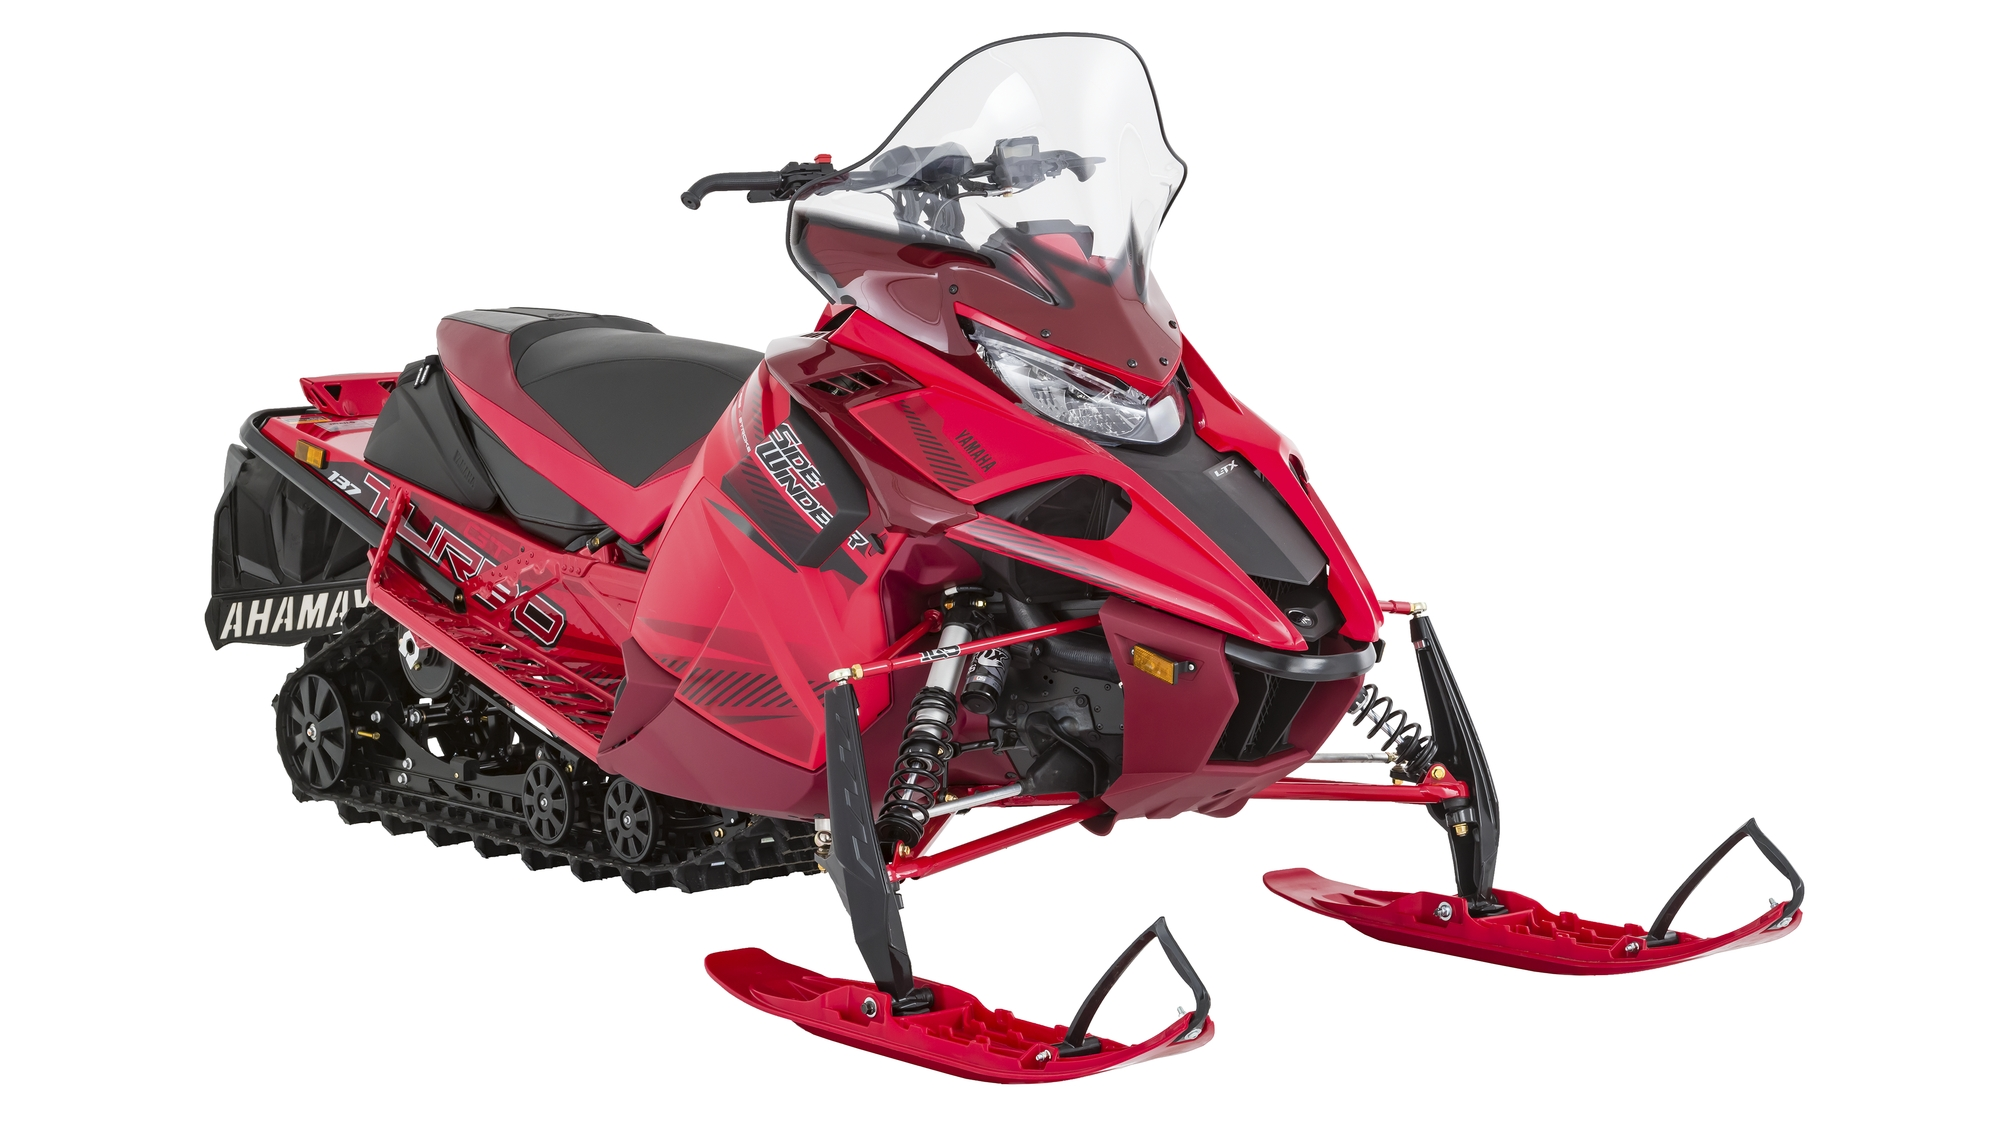 2020-Yamaha-SIDEWINDER-L-TX-GT-137-EU-Racing_Red-Studio-001-03